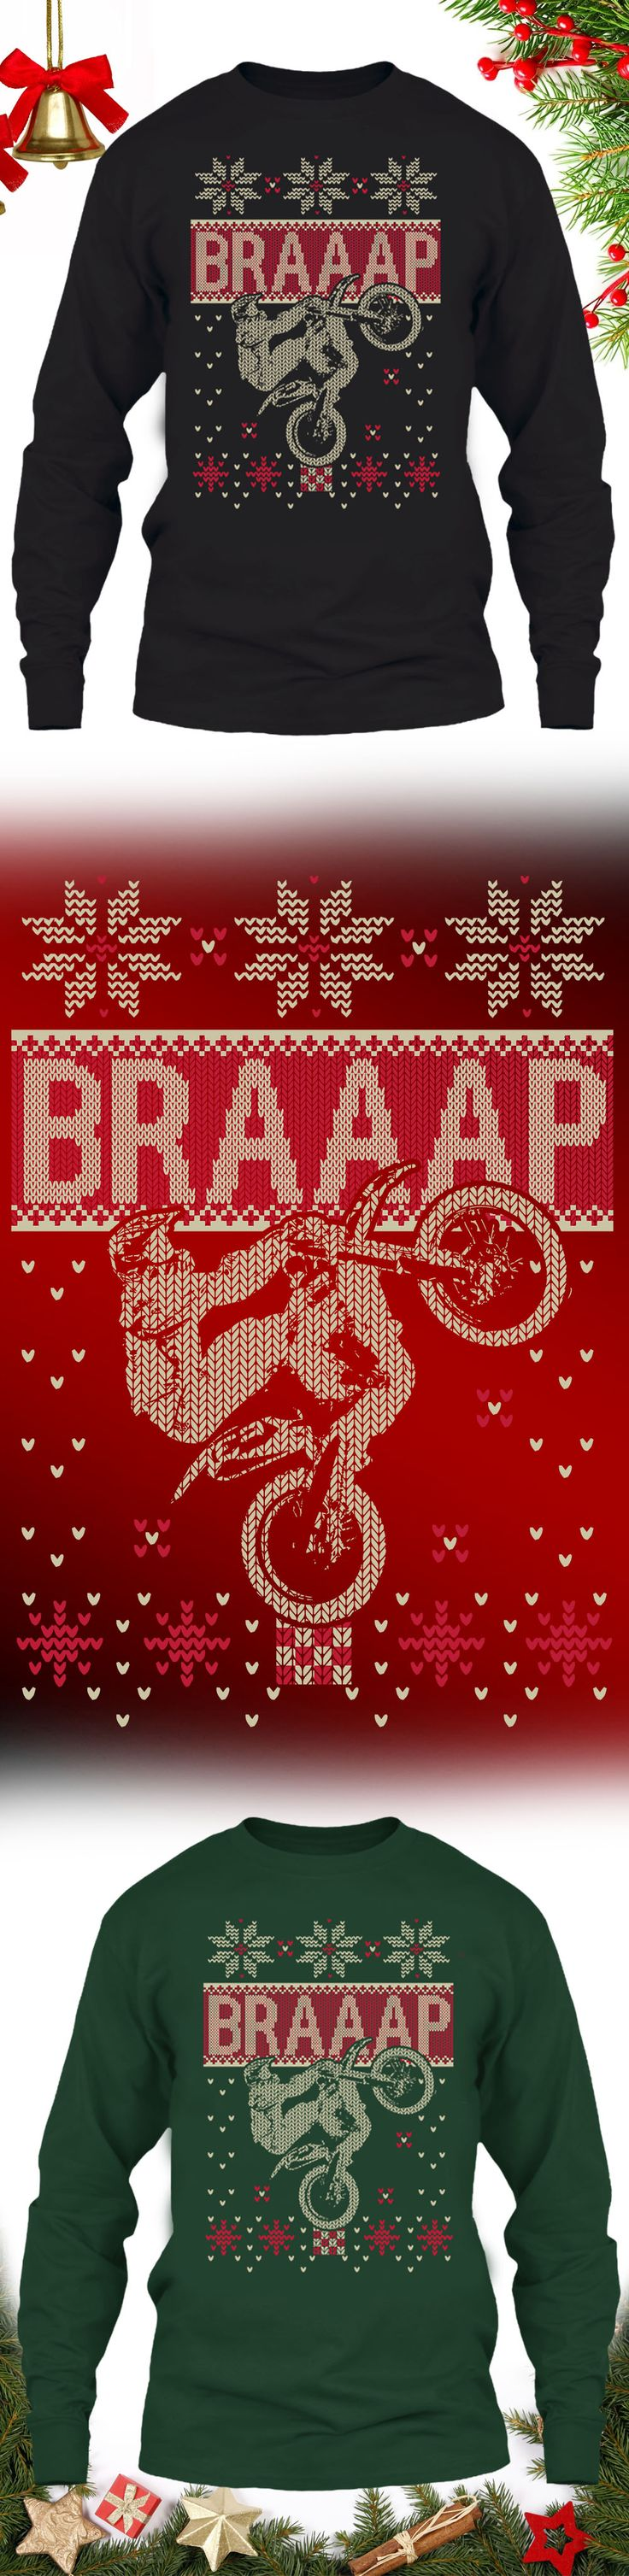 Motorcycle Christmas Sweater - Get this limited edition ugly Christmas Sweater just in time for the holidays! Buy 2 or more, save on shipping!